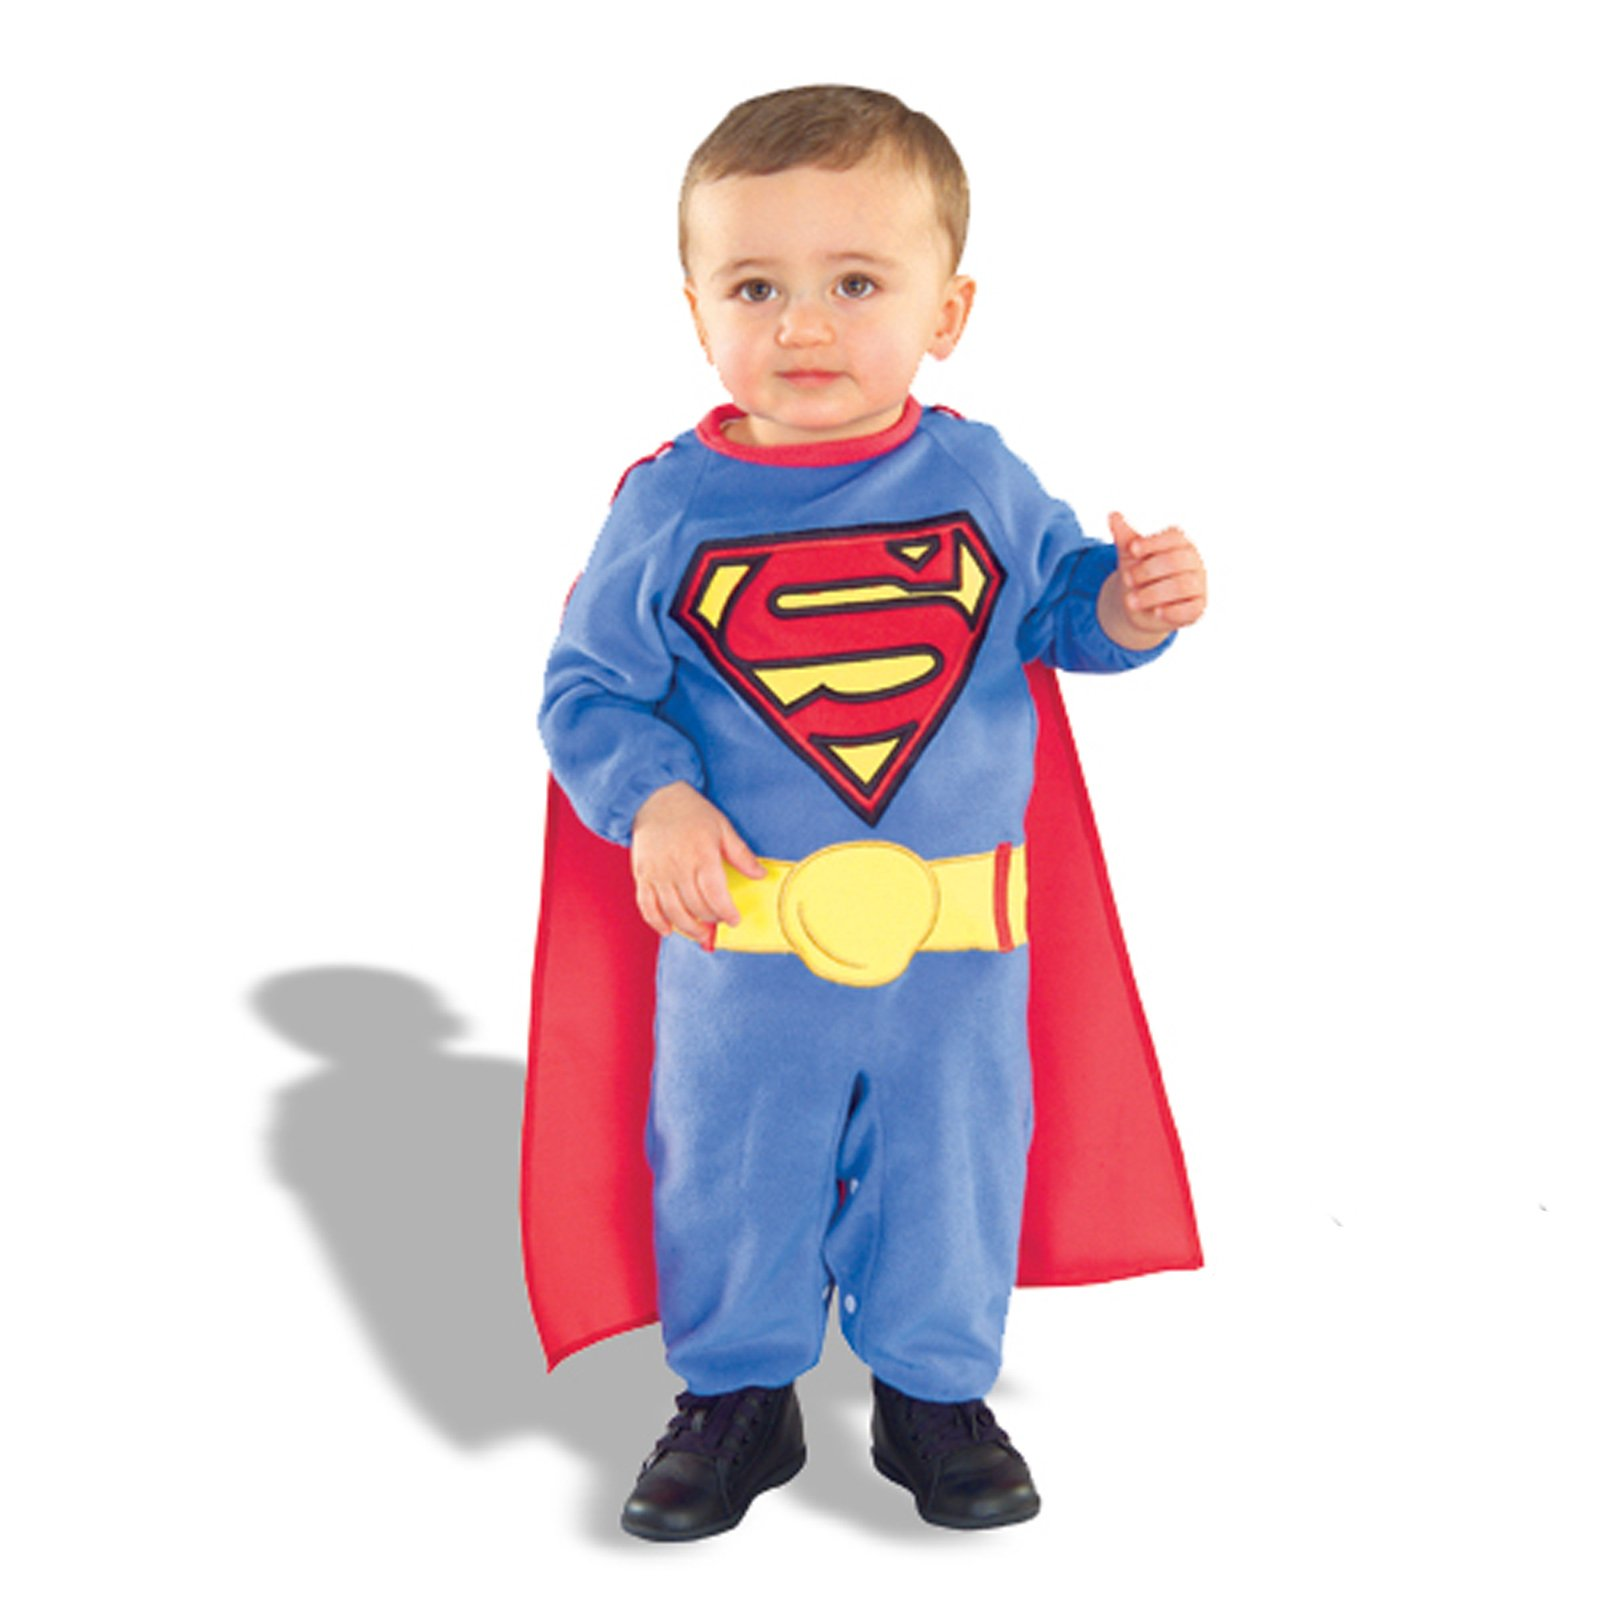 baby superman drawing clipart panda free clipart images. Black Bedroom Furniture Sets. Home Design Ideas